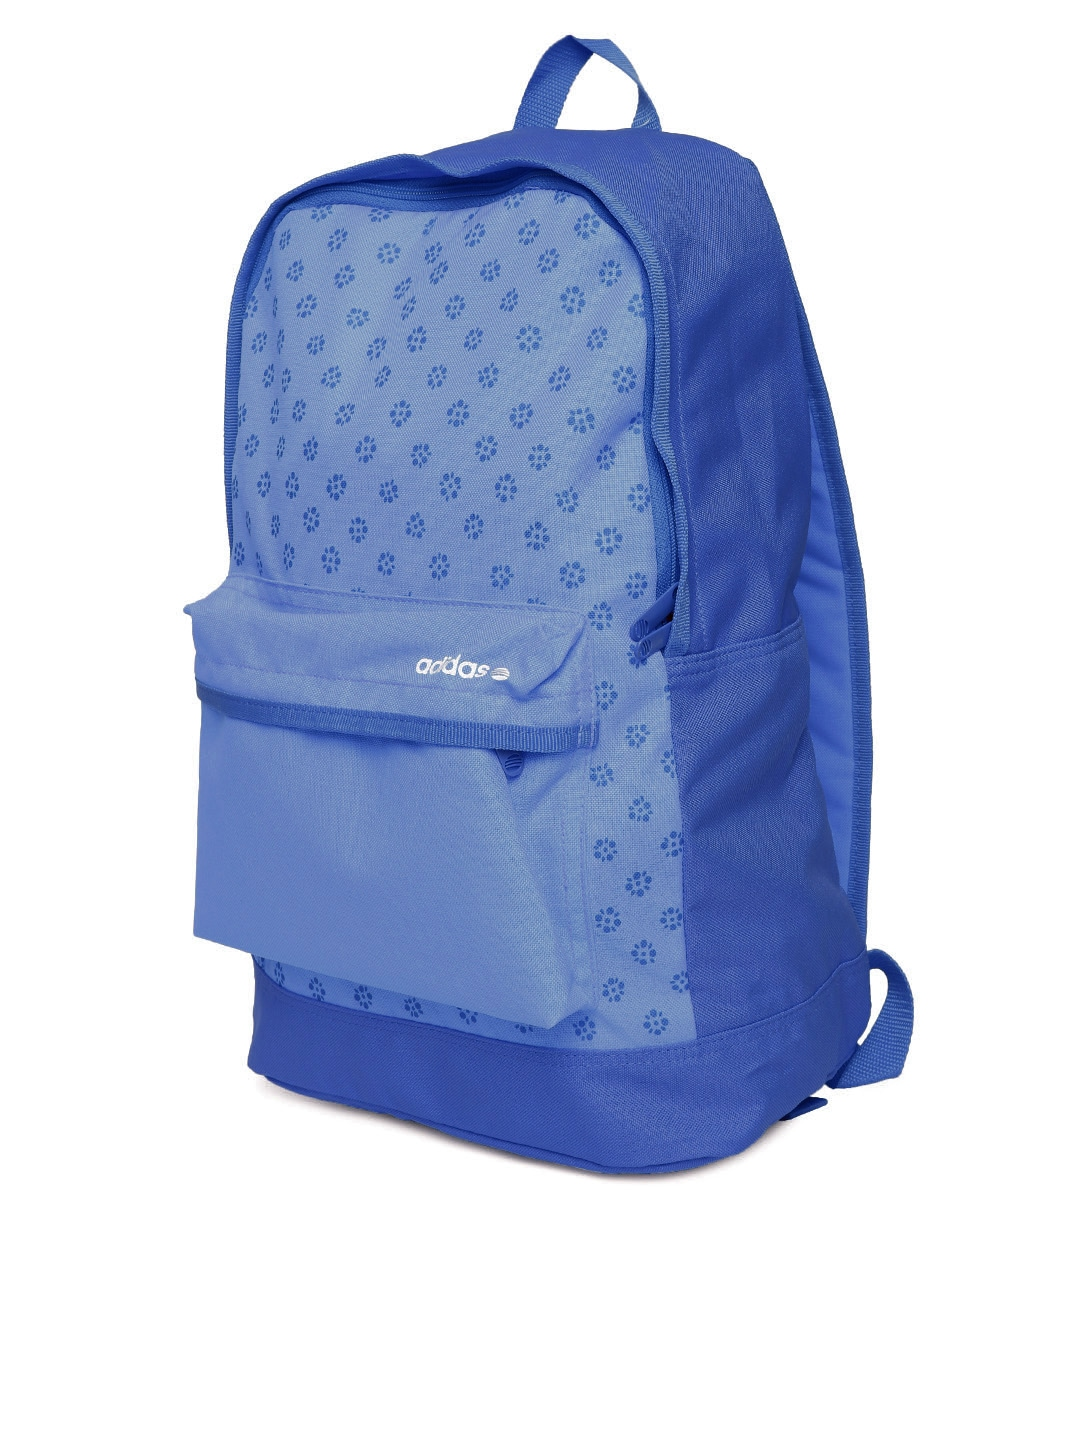 myntra adidas neo women blue backpack 703384 buy myntra. Black Bedroom Furniture Sets. Home Design Ideas